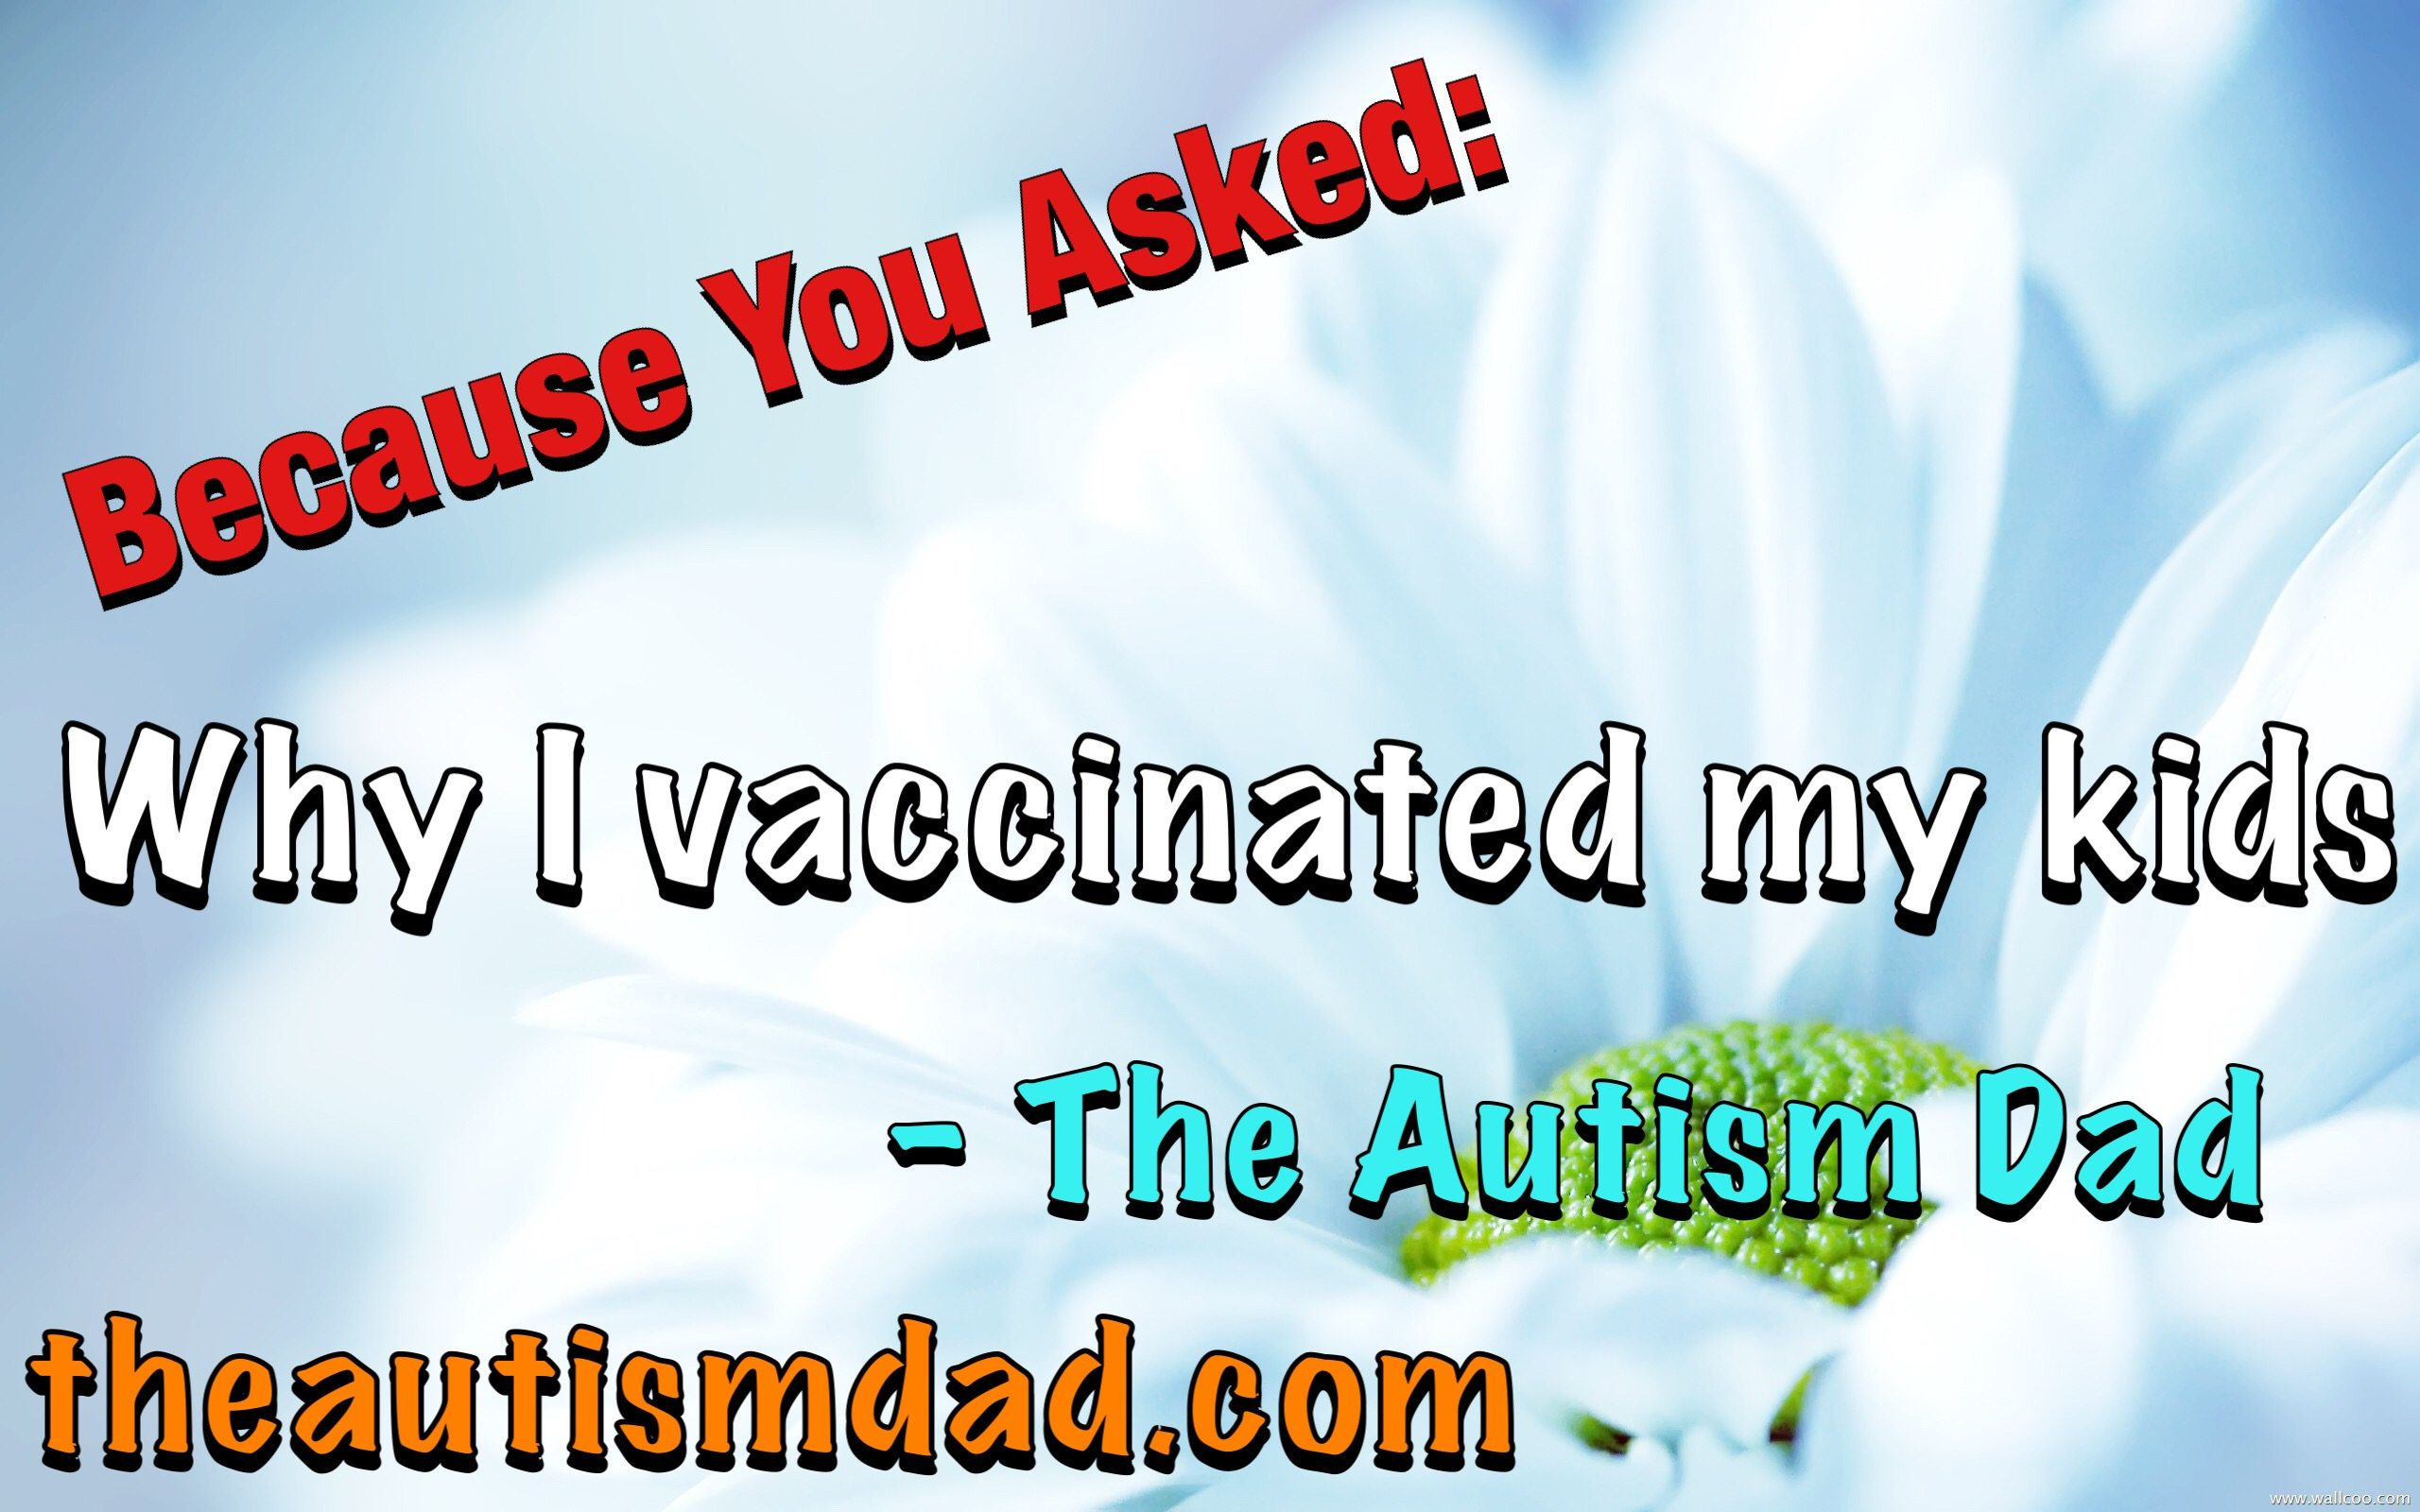 Because You Asked: Why I vaccinated my kids